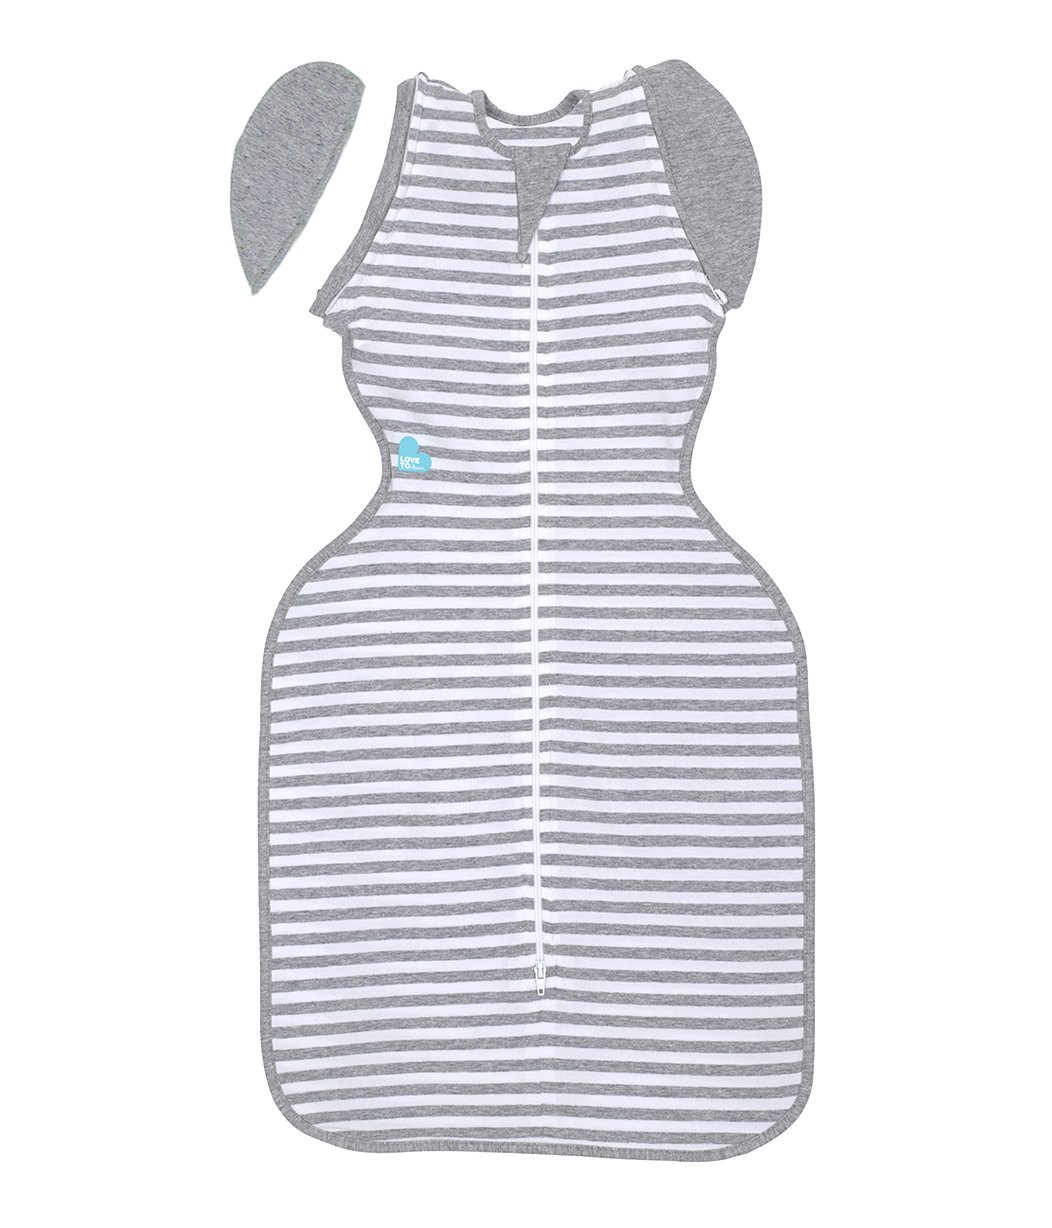 Love To Dream Swaddle UP- 50/50- Gray/White Striped - Large, 18.5-24 lbs